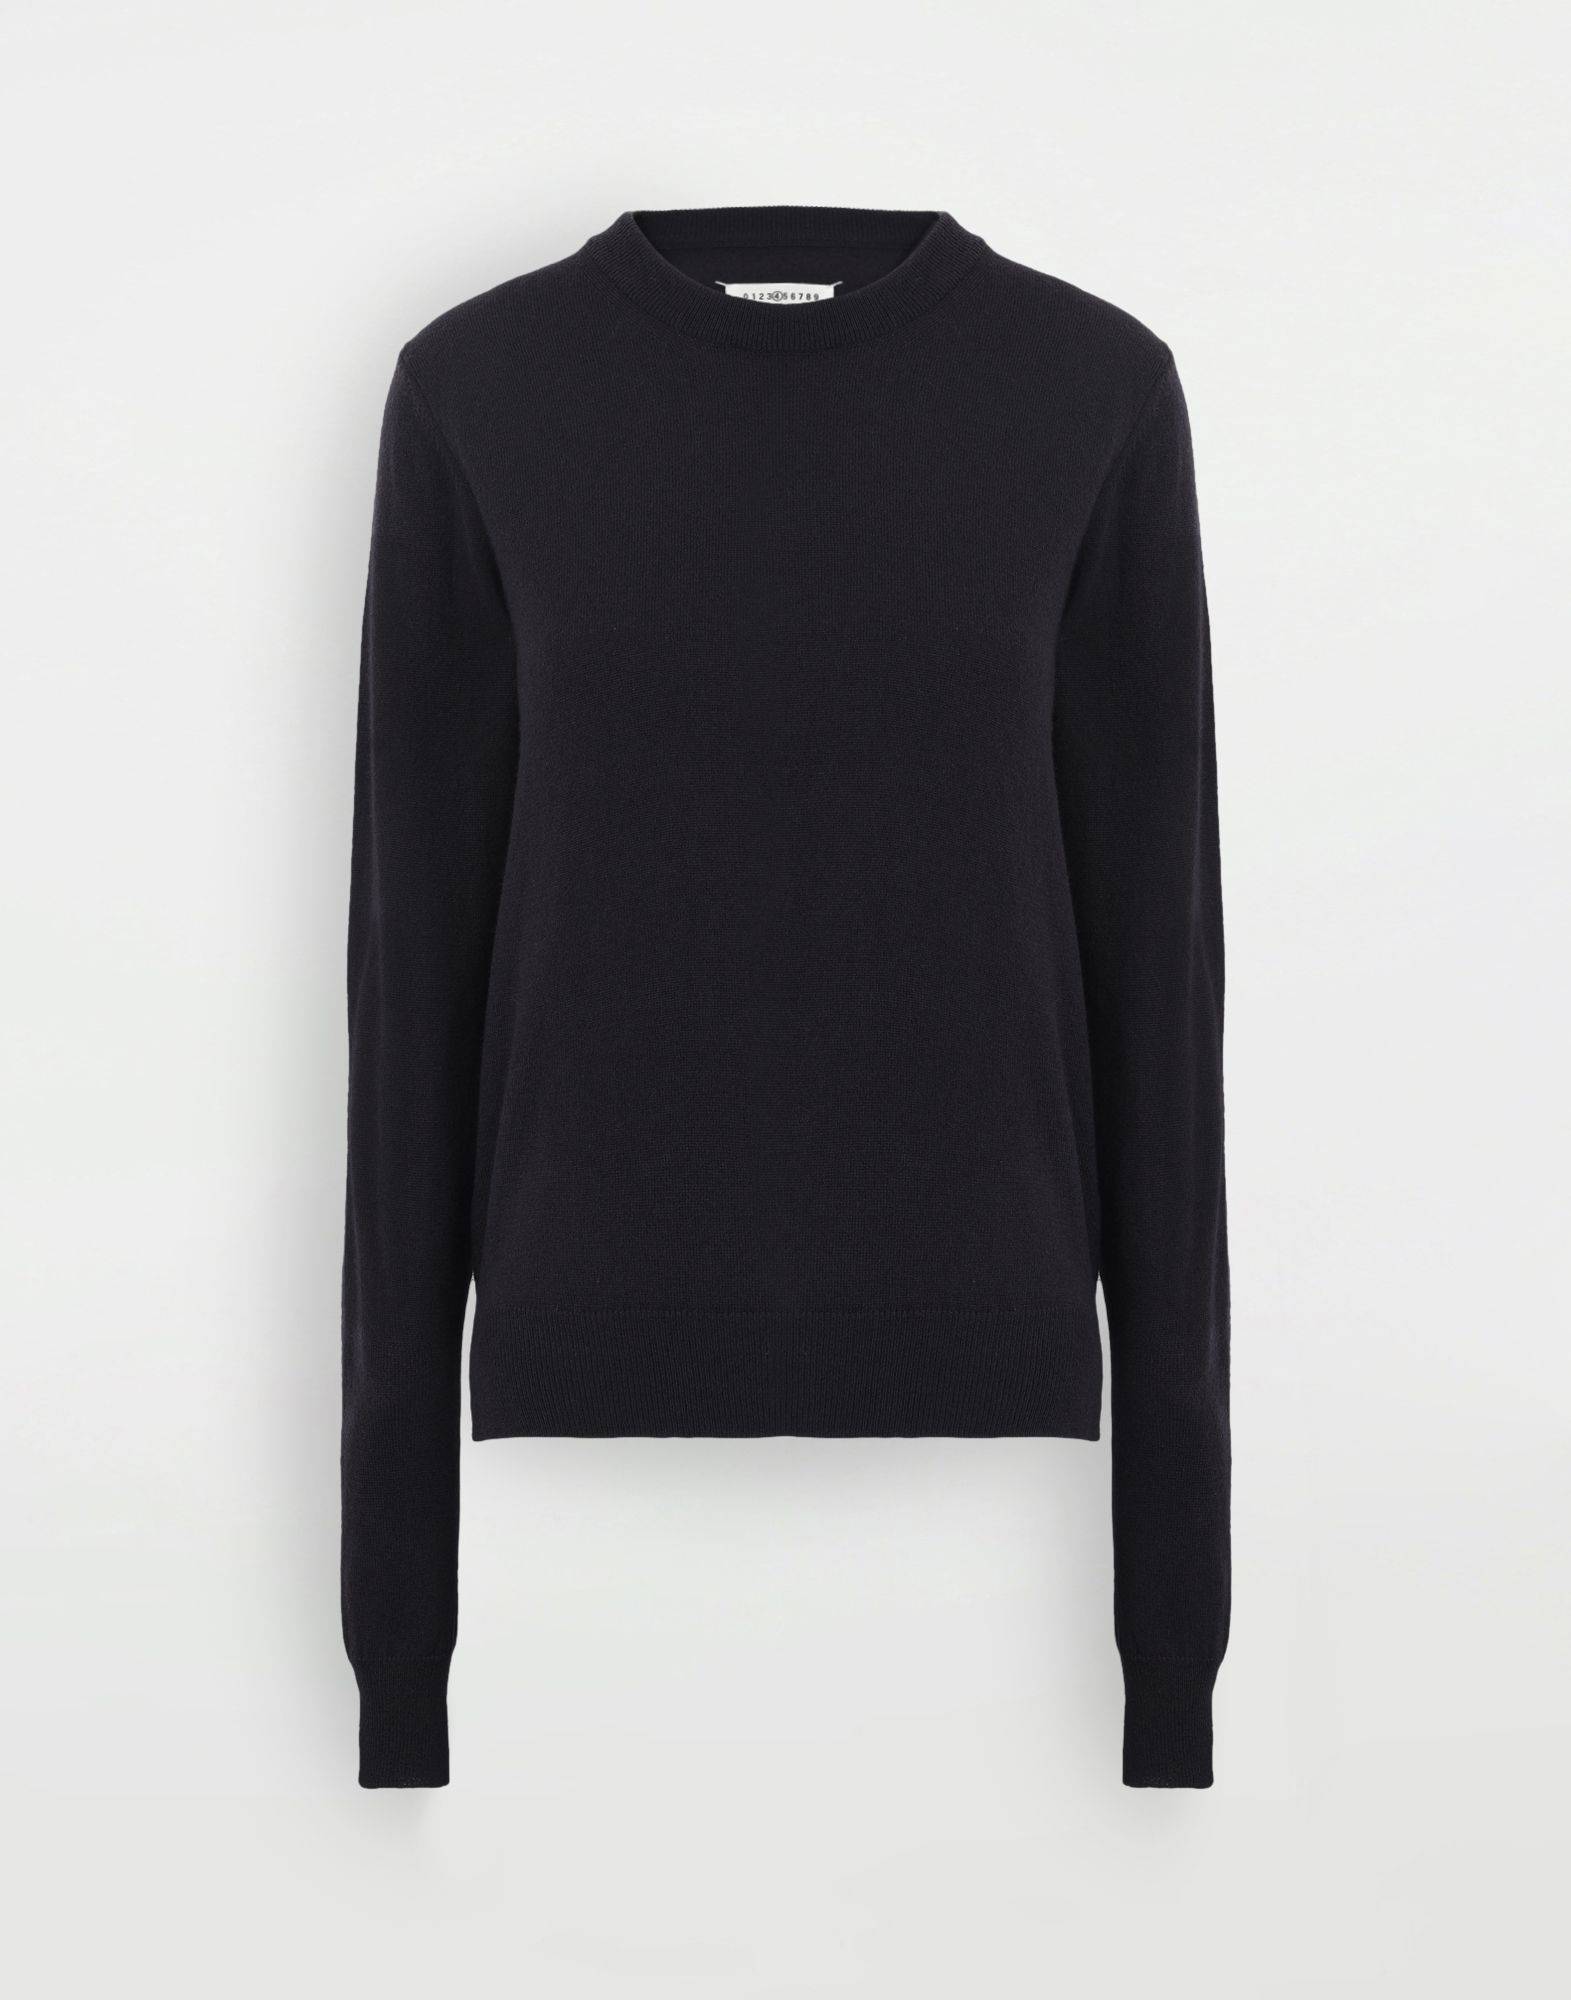 MAISON MARGIELA Elbow patch sweater Long sleeve sweater Woman f